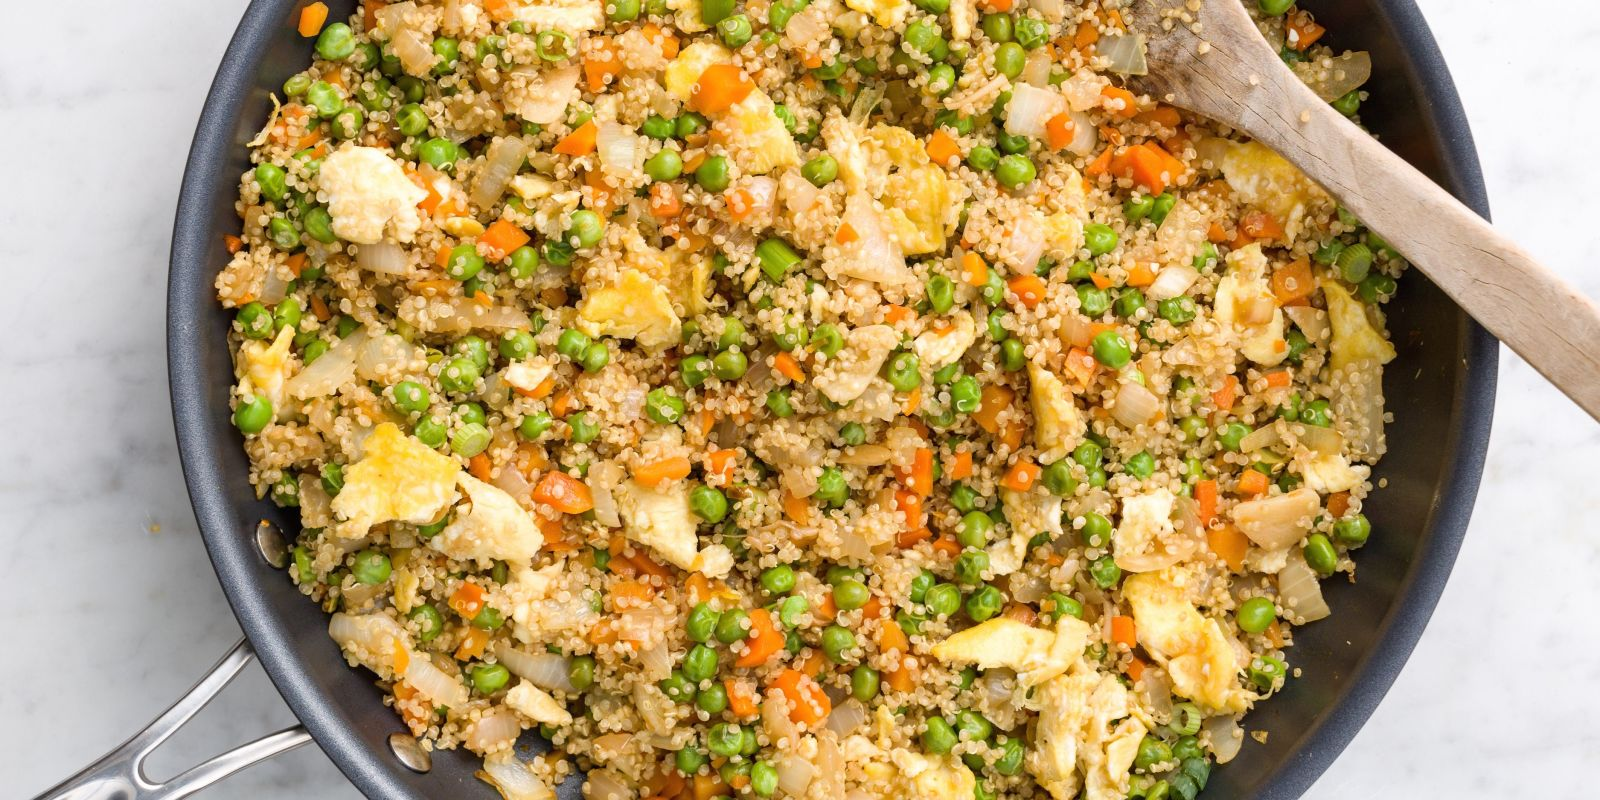 Best Quinoa Fried Rice Recipe - How to Make Quinoa Fried Rice